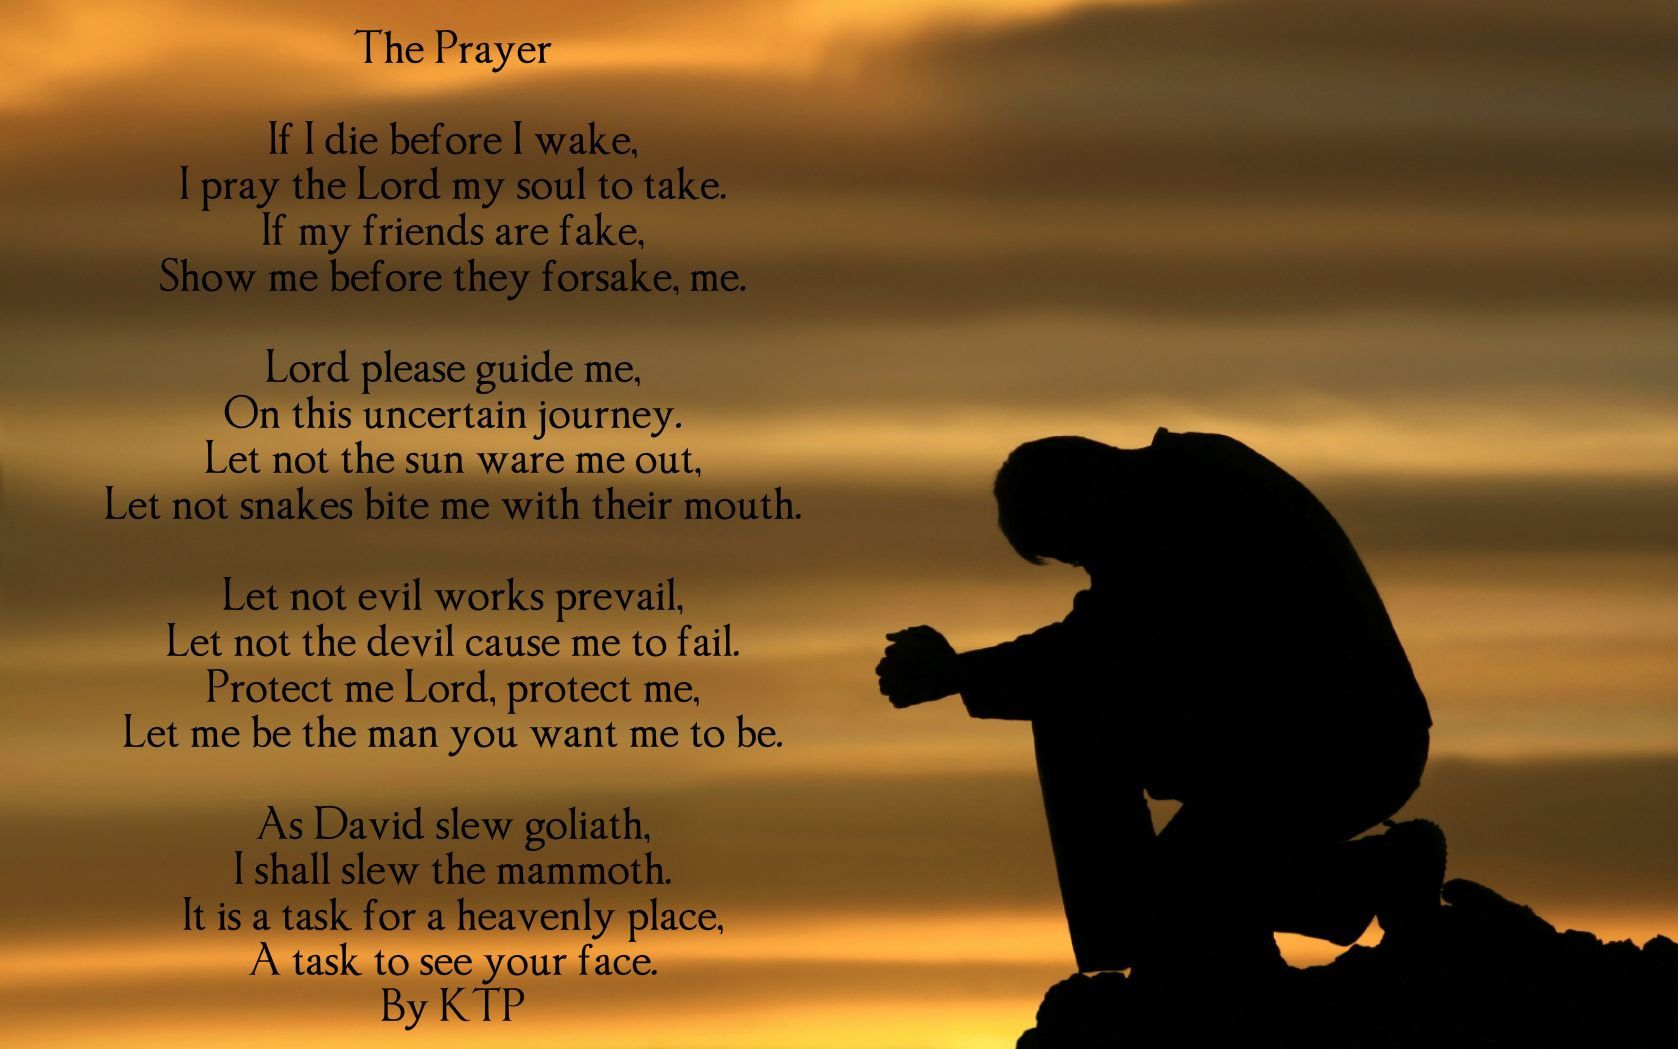 Prayer Request Quotes A Prayer A Daypoem  Kerione Bryan's Poetry  Pinterest  Poem